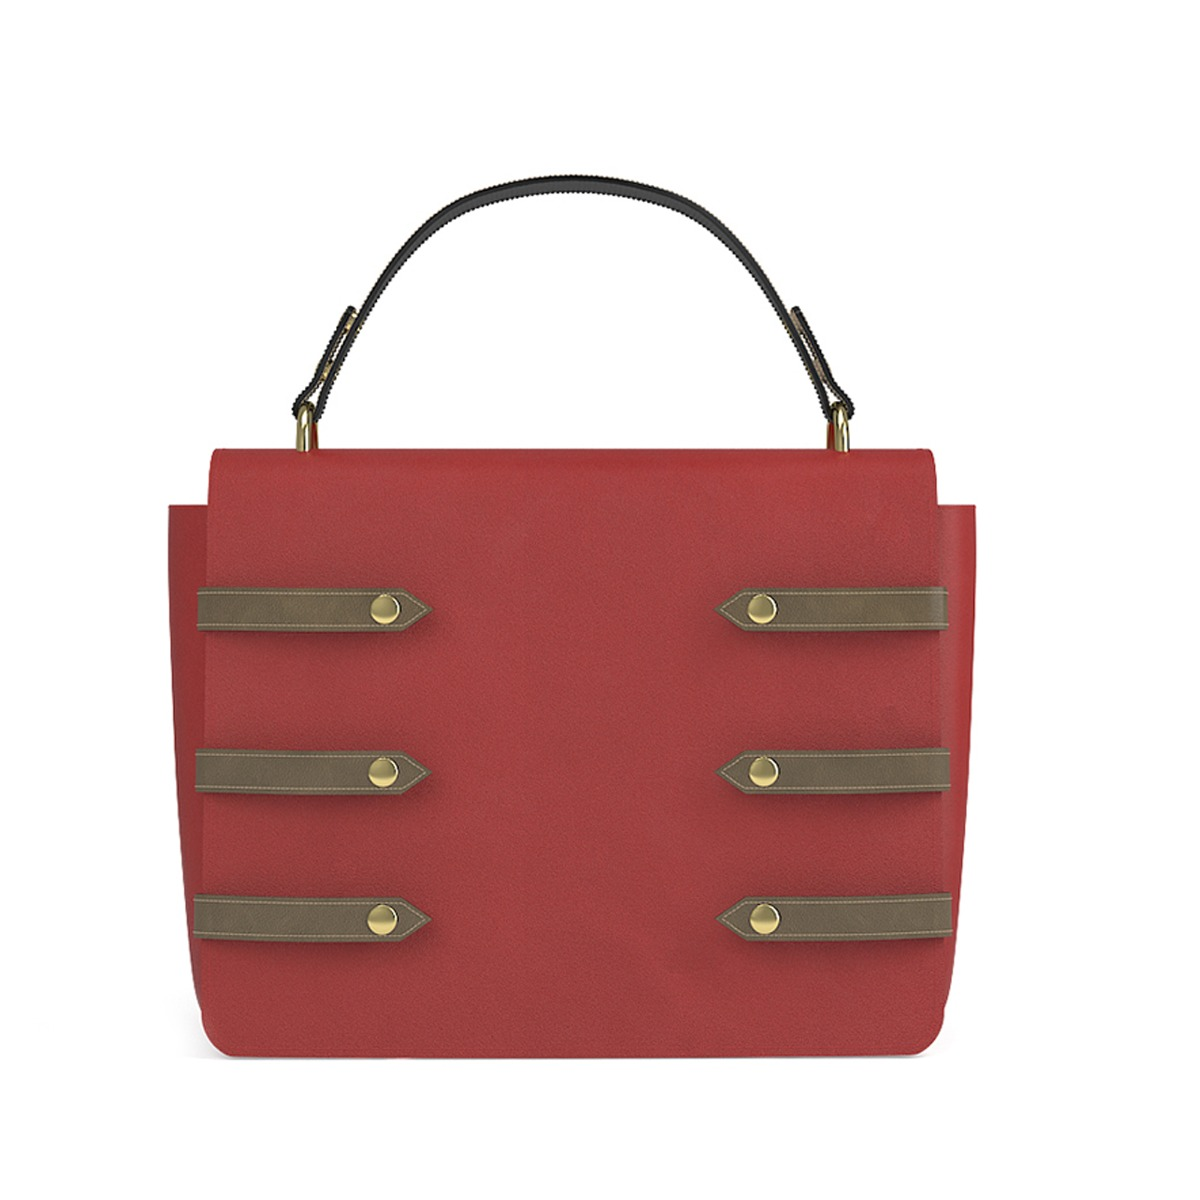 BAG005RED02SSD